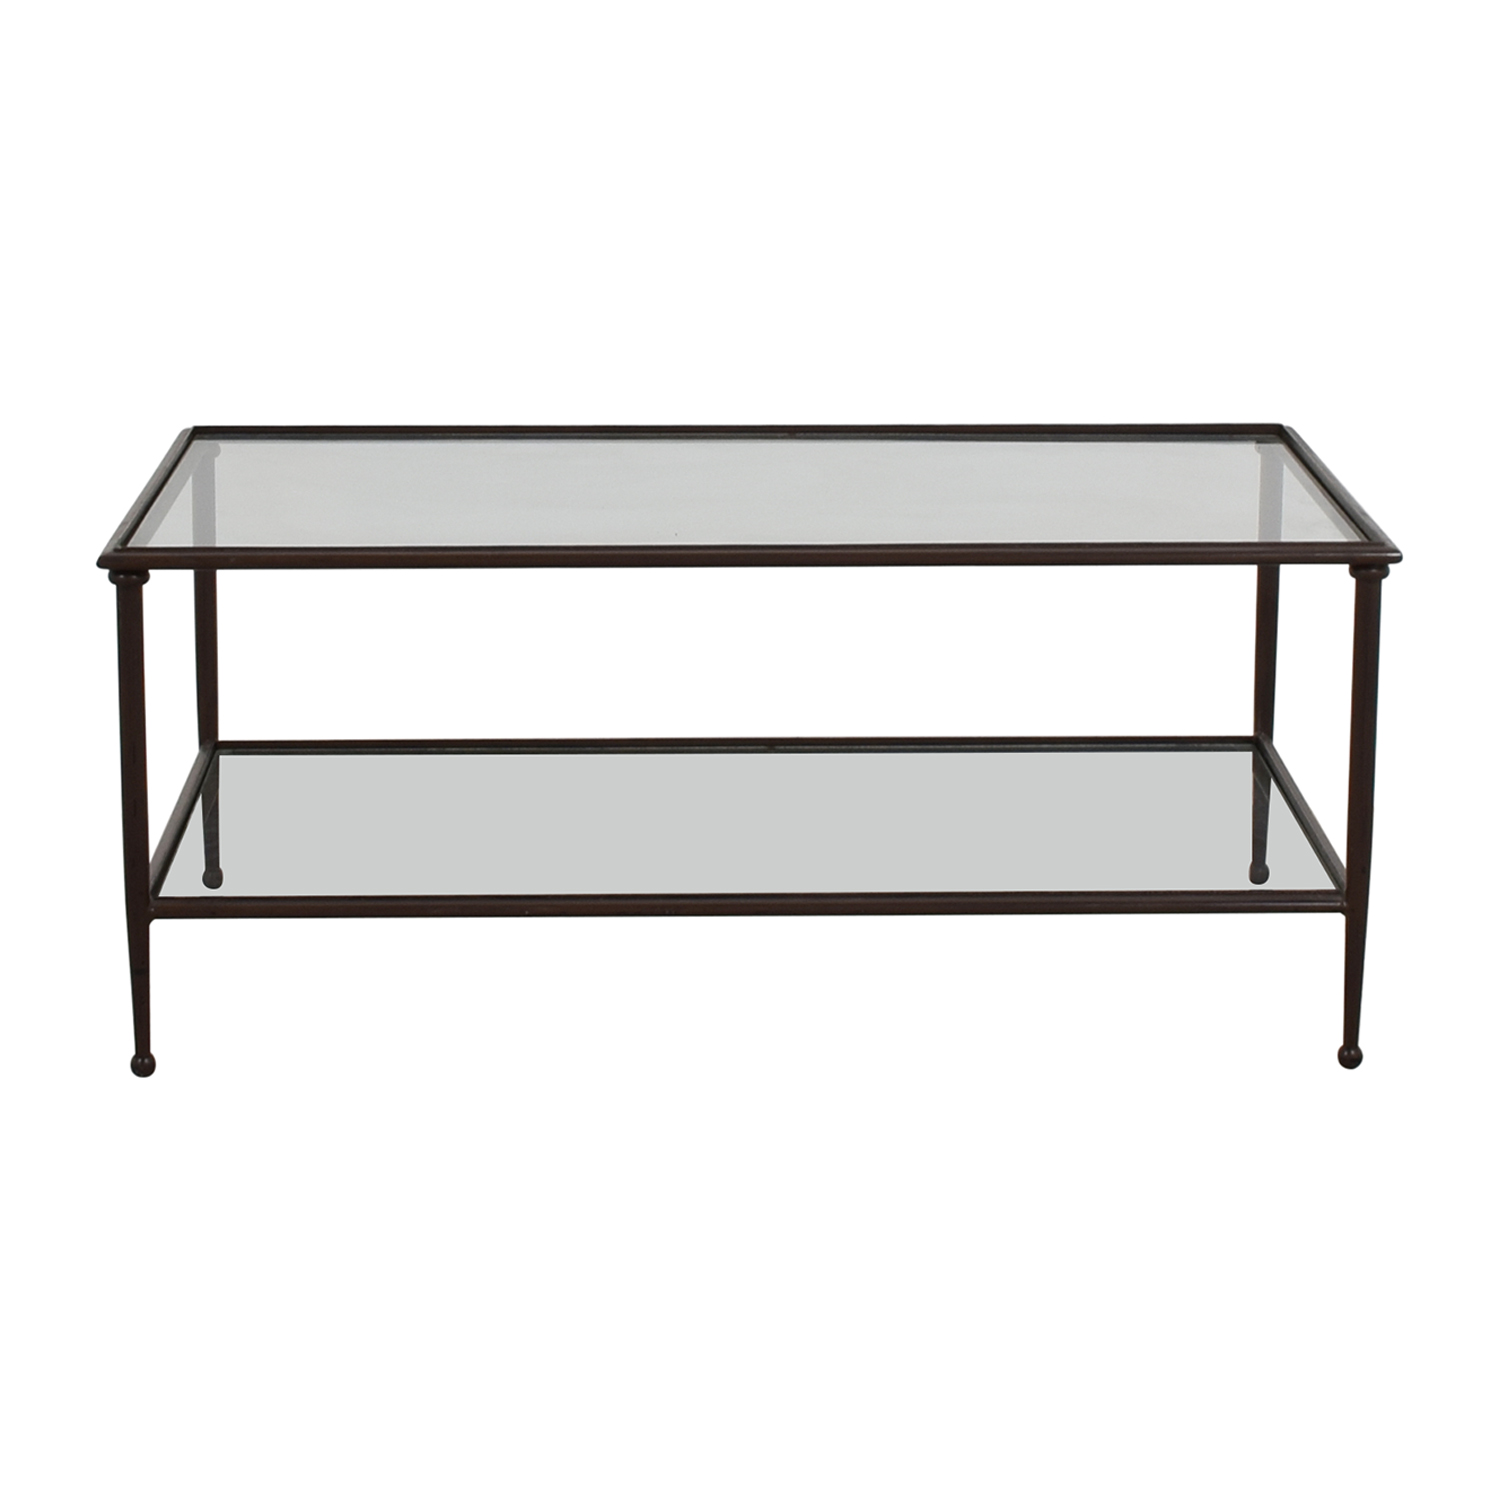 Crate & Barrel Glass & Metal Coffee Table Crate & Barrel